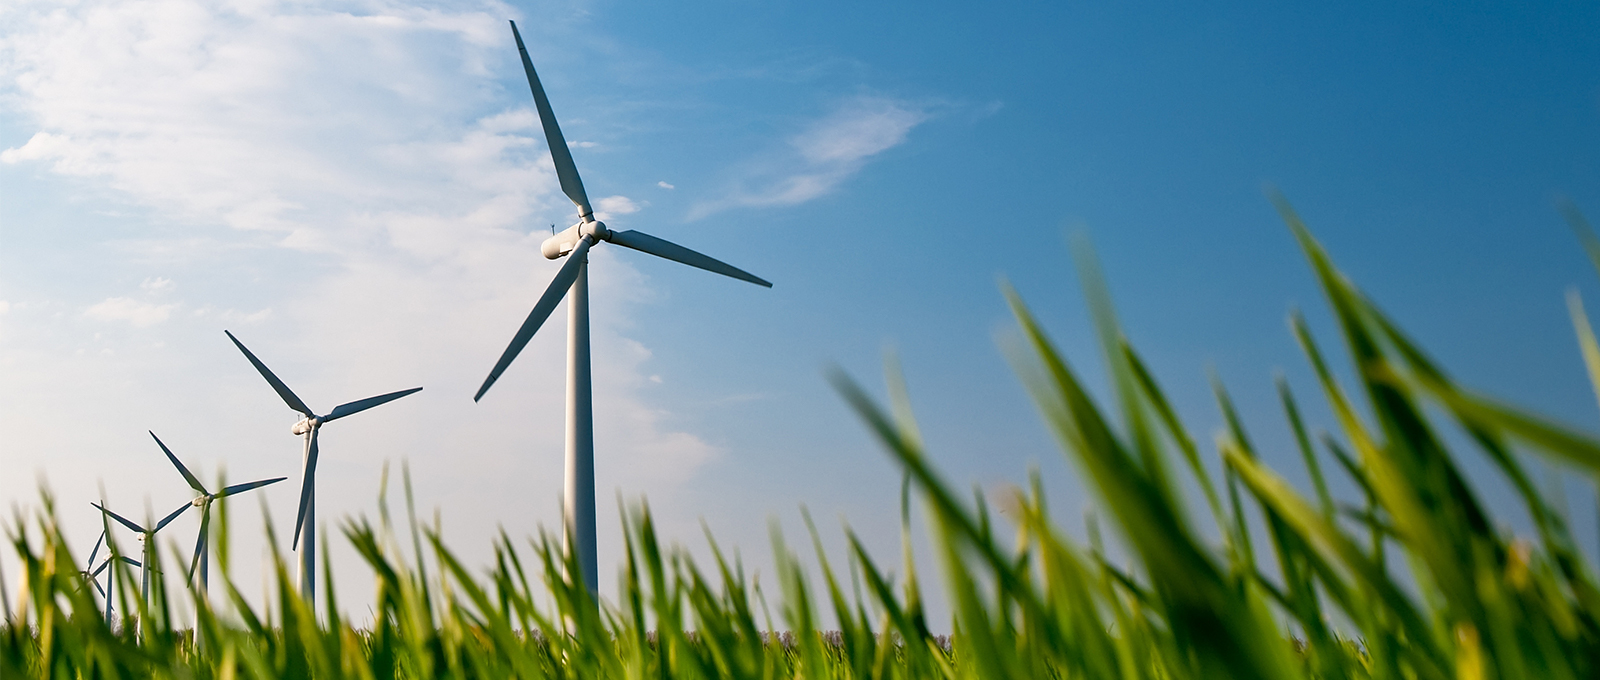 Prysmian supports the renewable energy industry worldwide